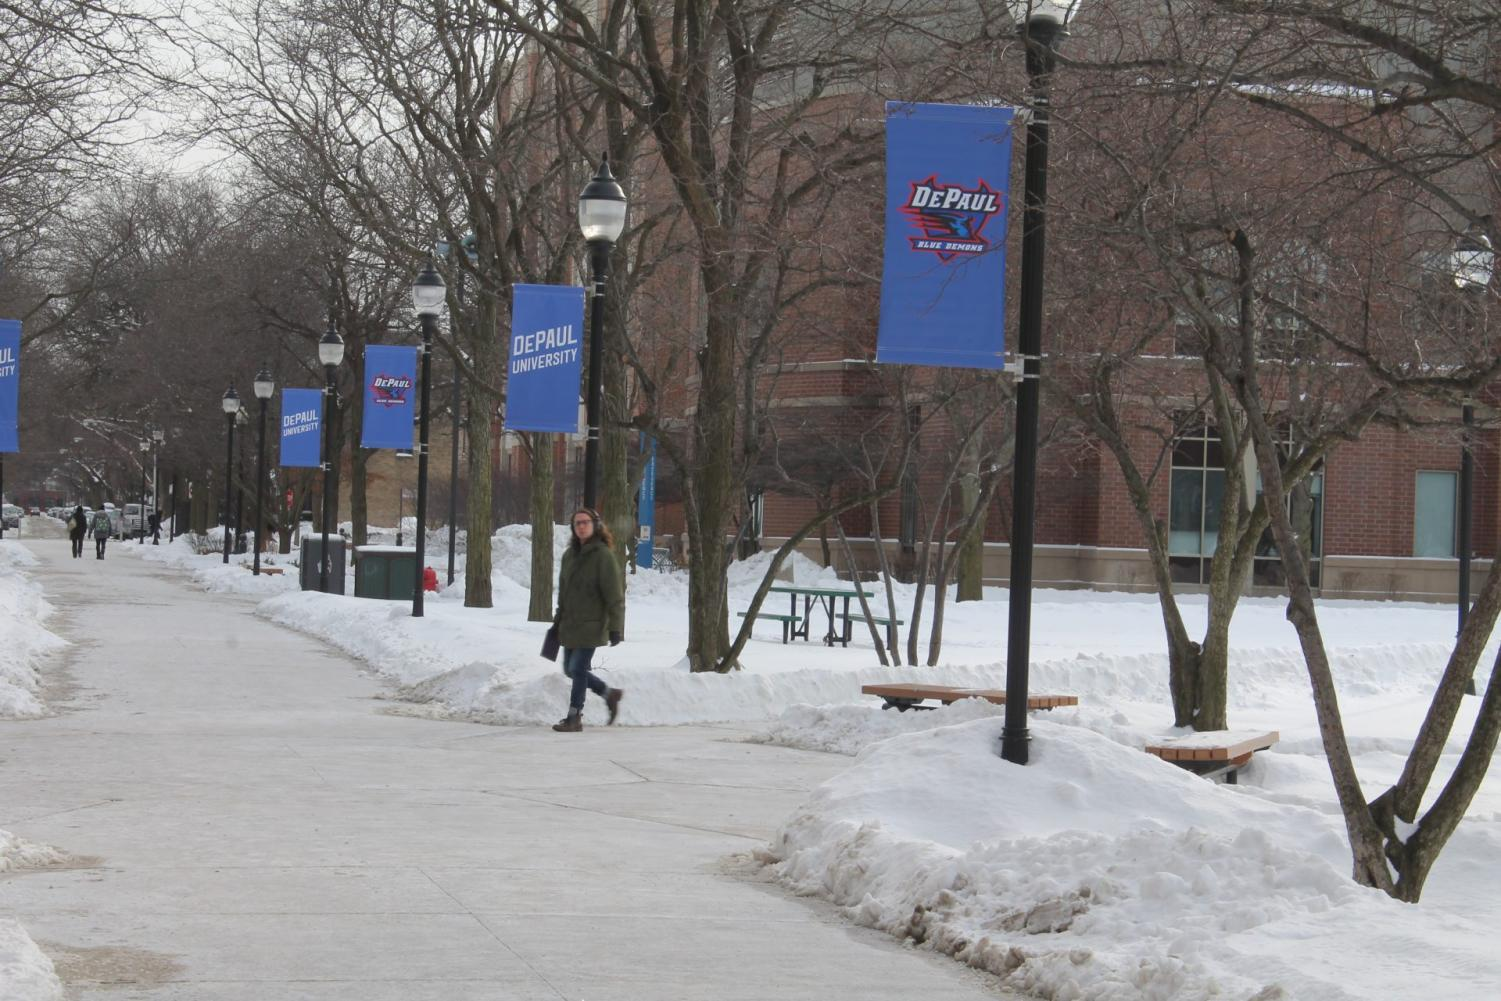 A student walks through the Quad on one of the coldest days ever recorded in Chicago, Jan. 30, 2019. This day fell during the beginning of DePaul's Winter Quarter last year.